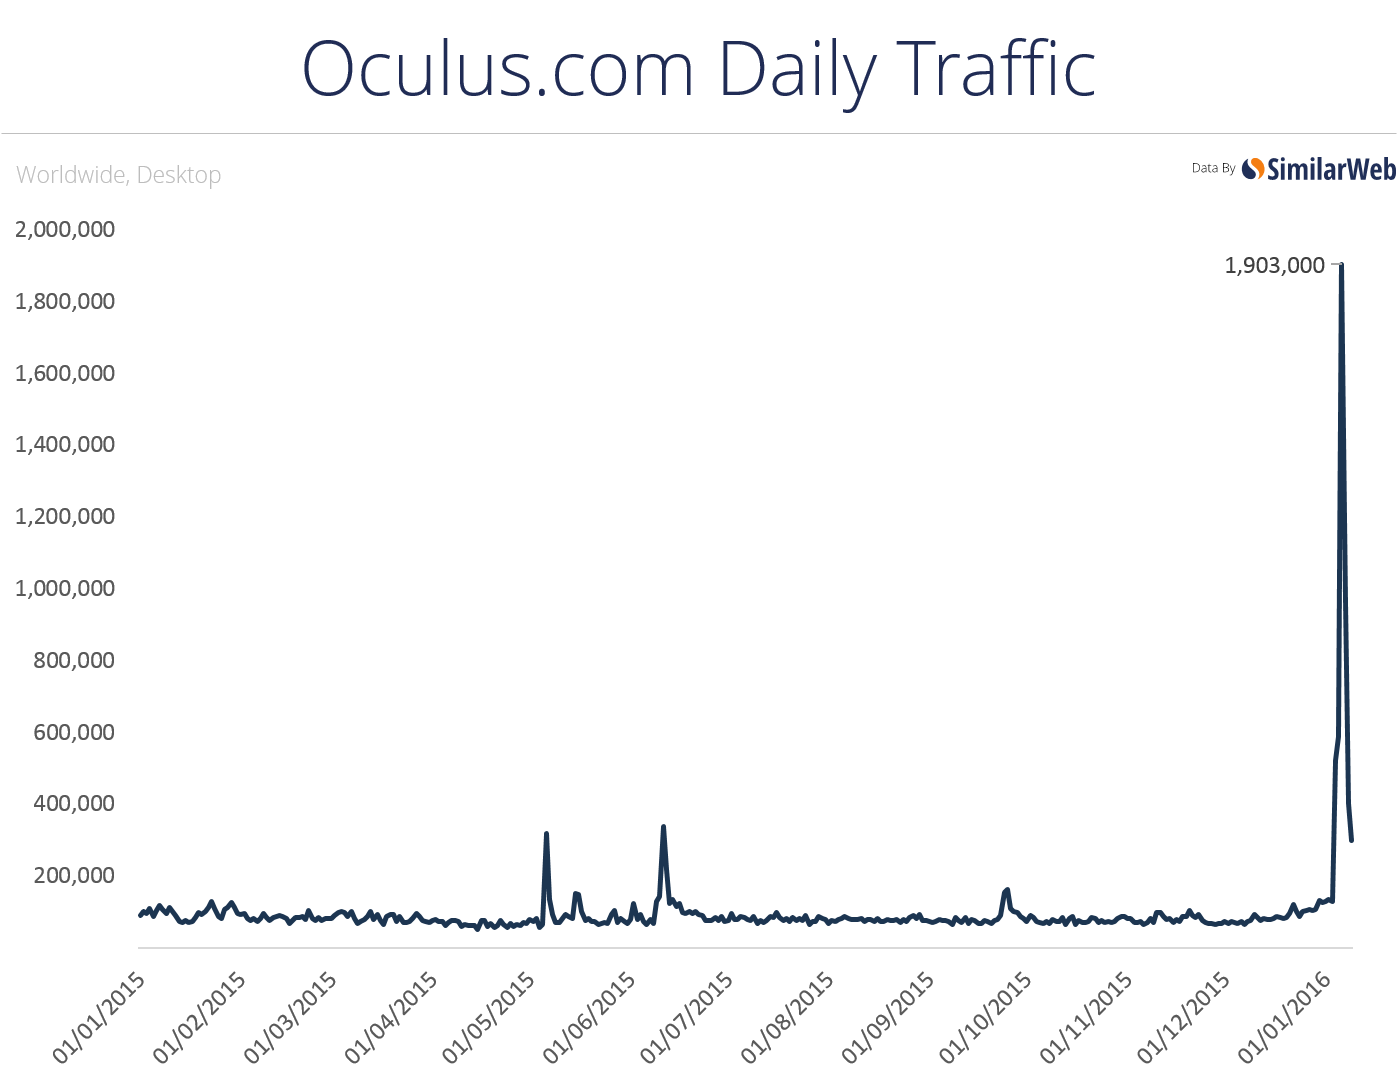 Oculus Traffic Surge